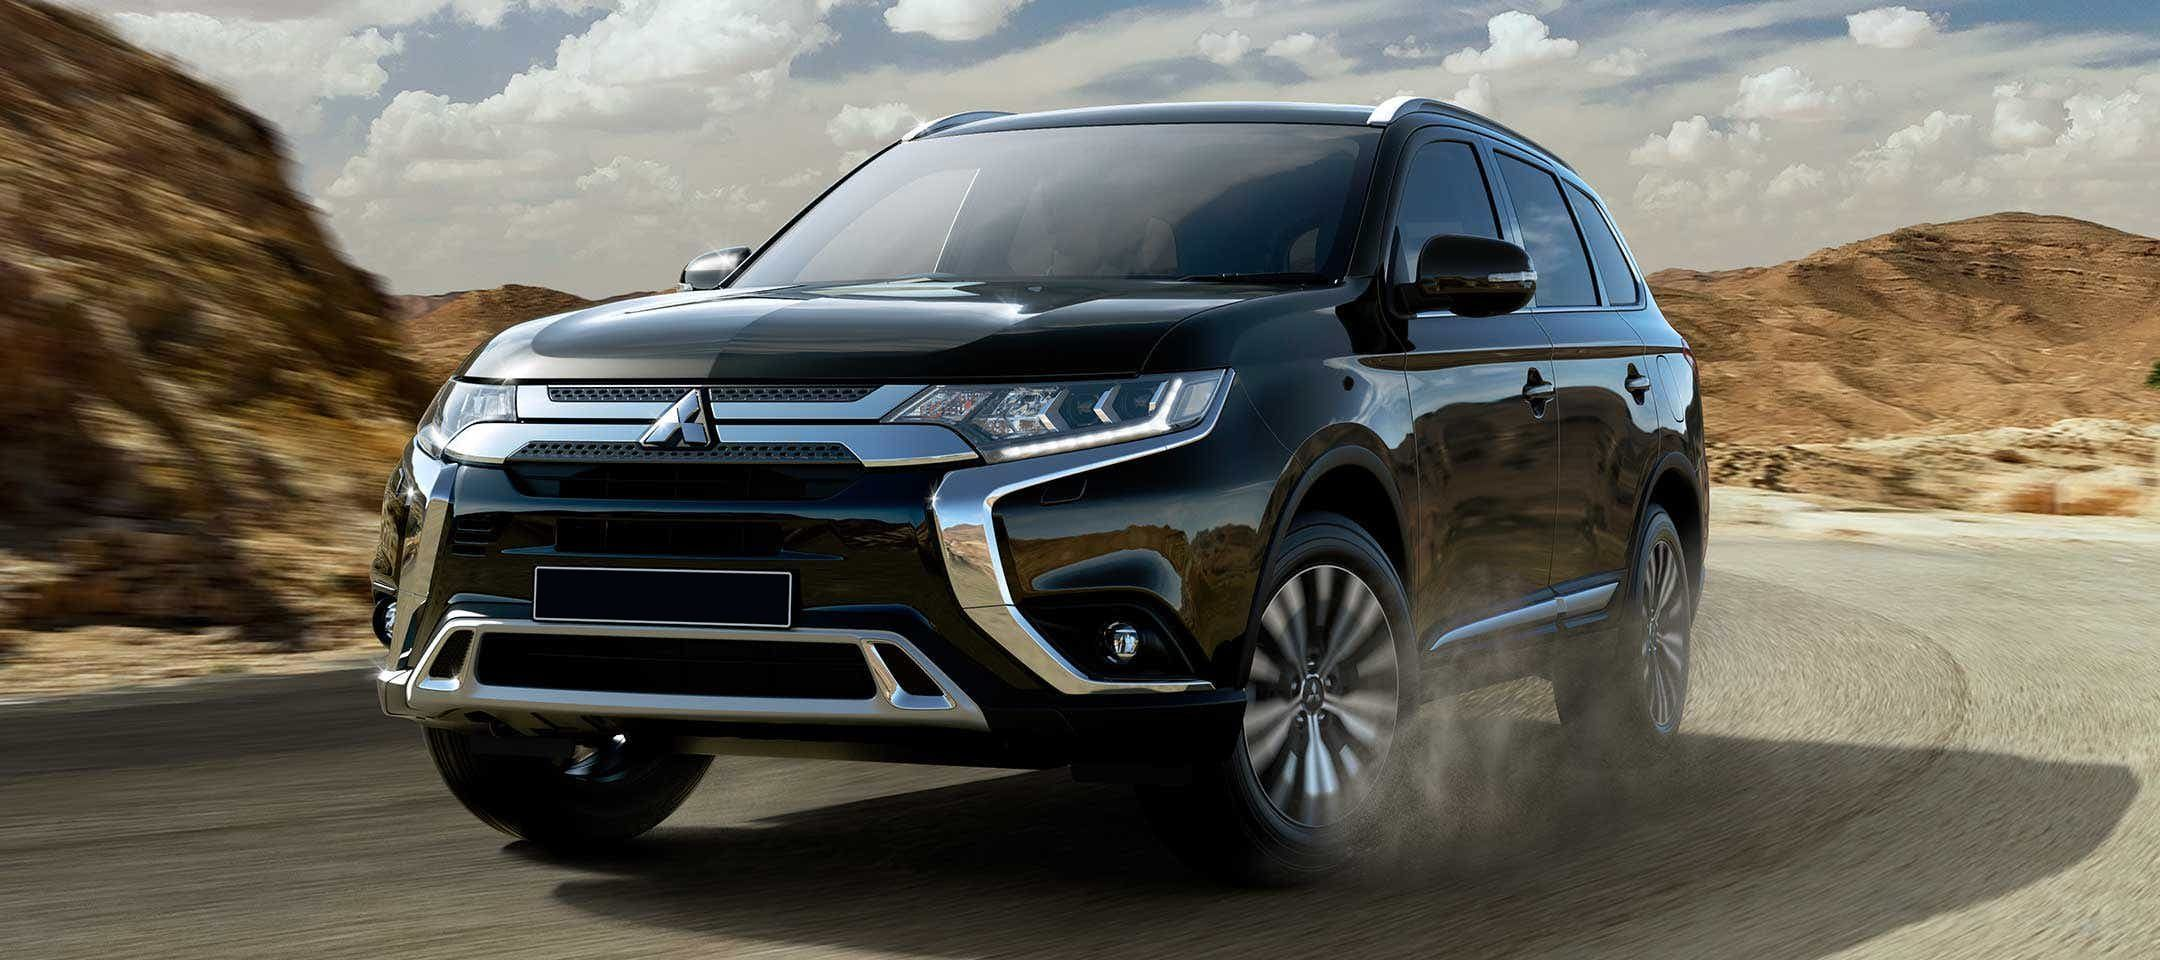 The spacious, versatile and refined SUV 🔥 Mitsubishi